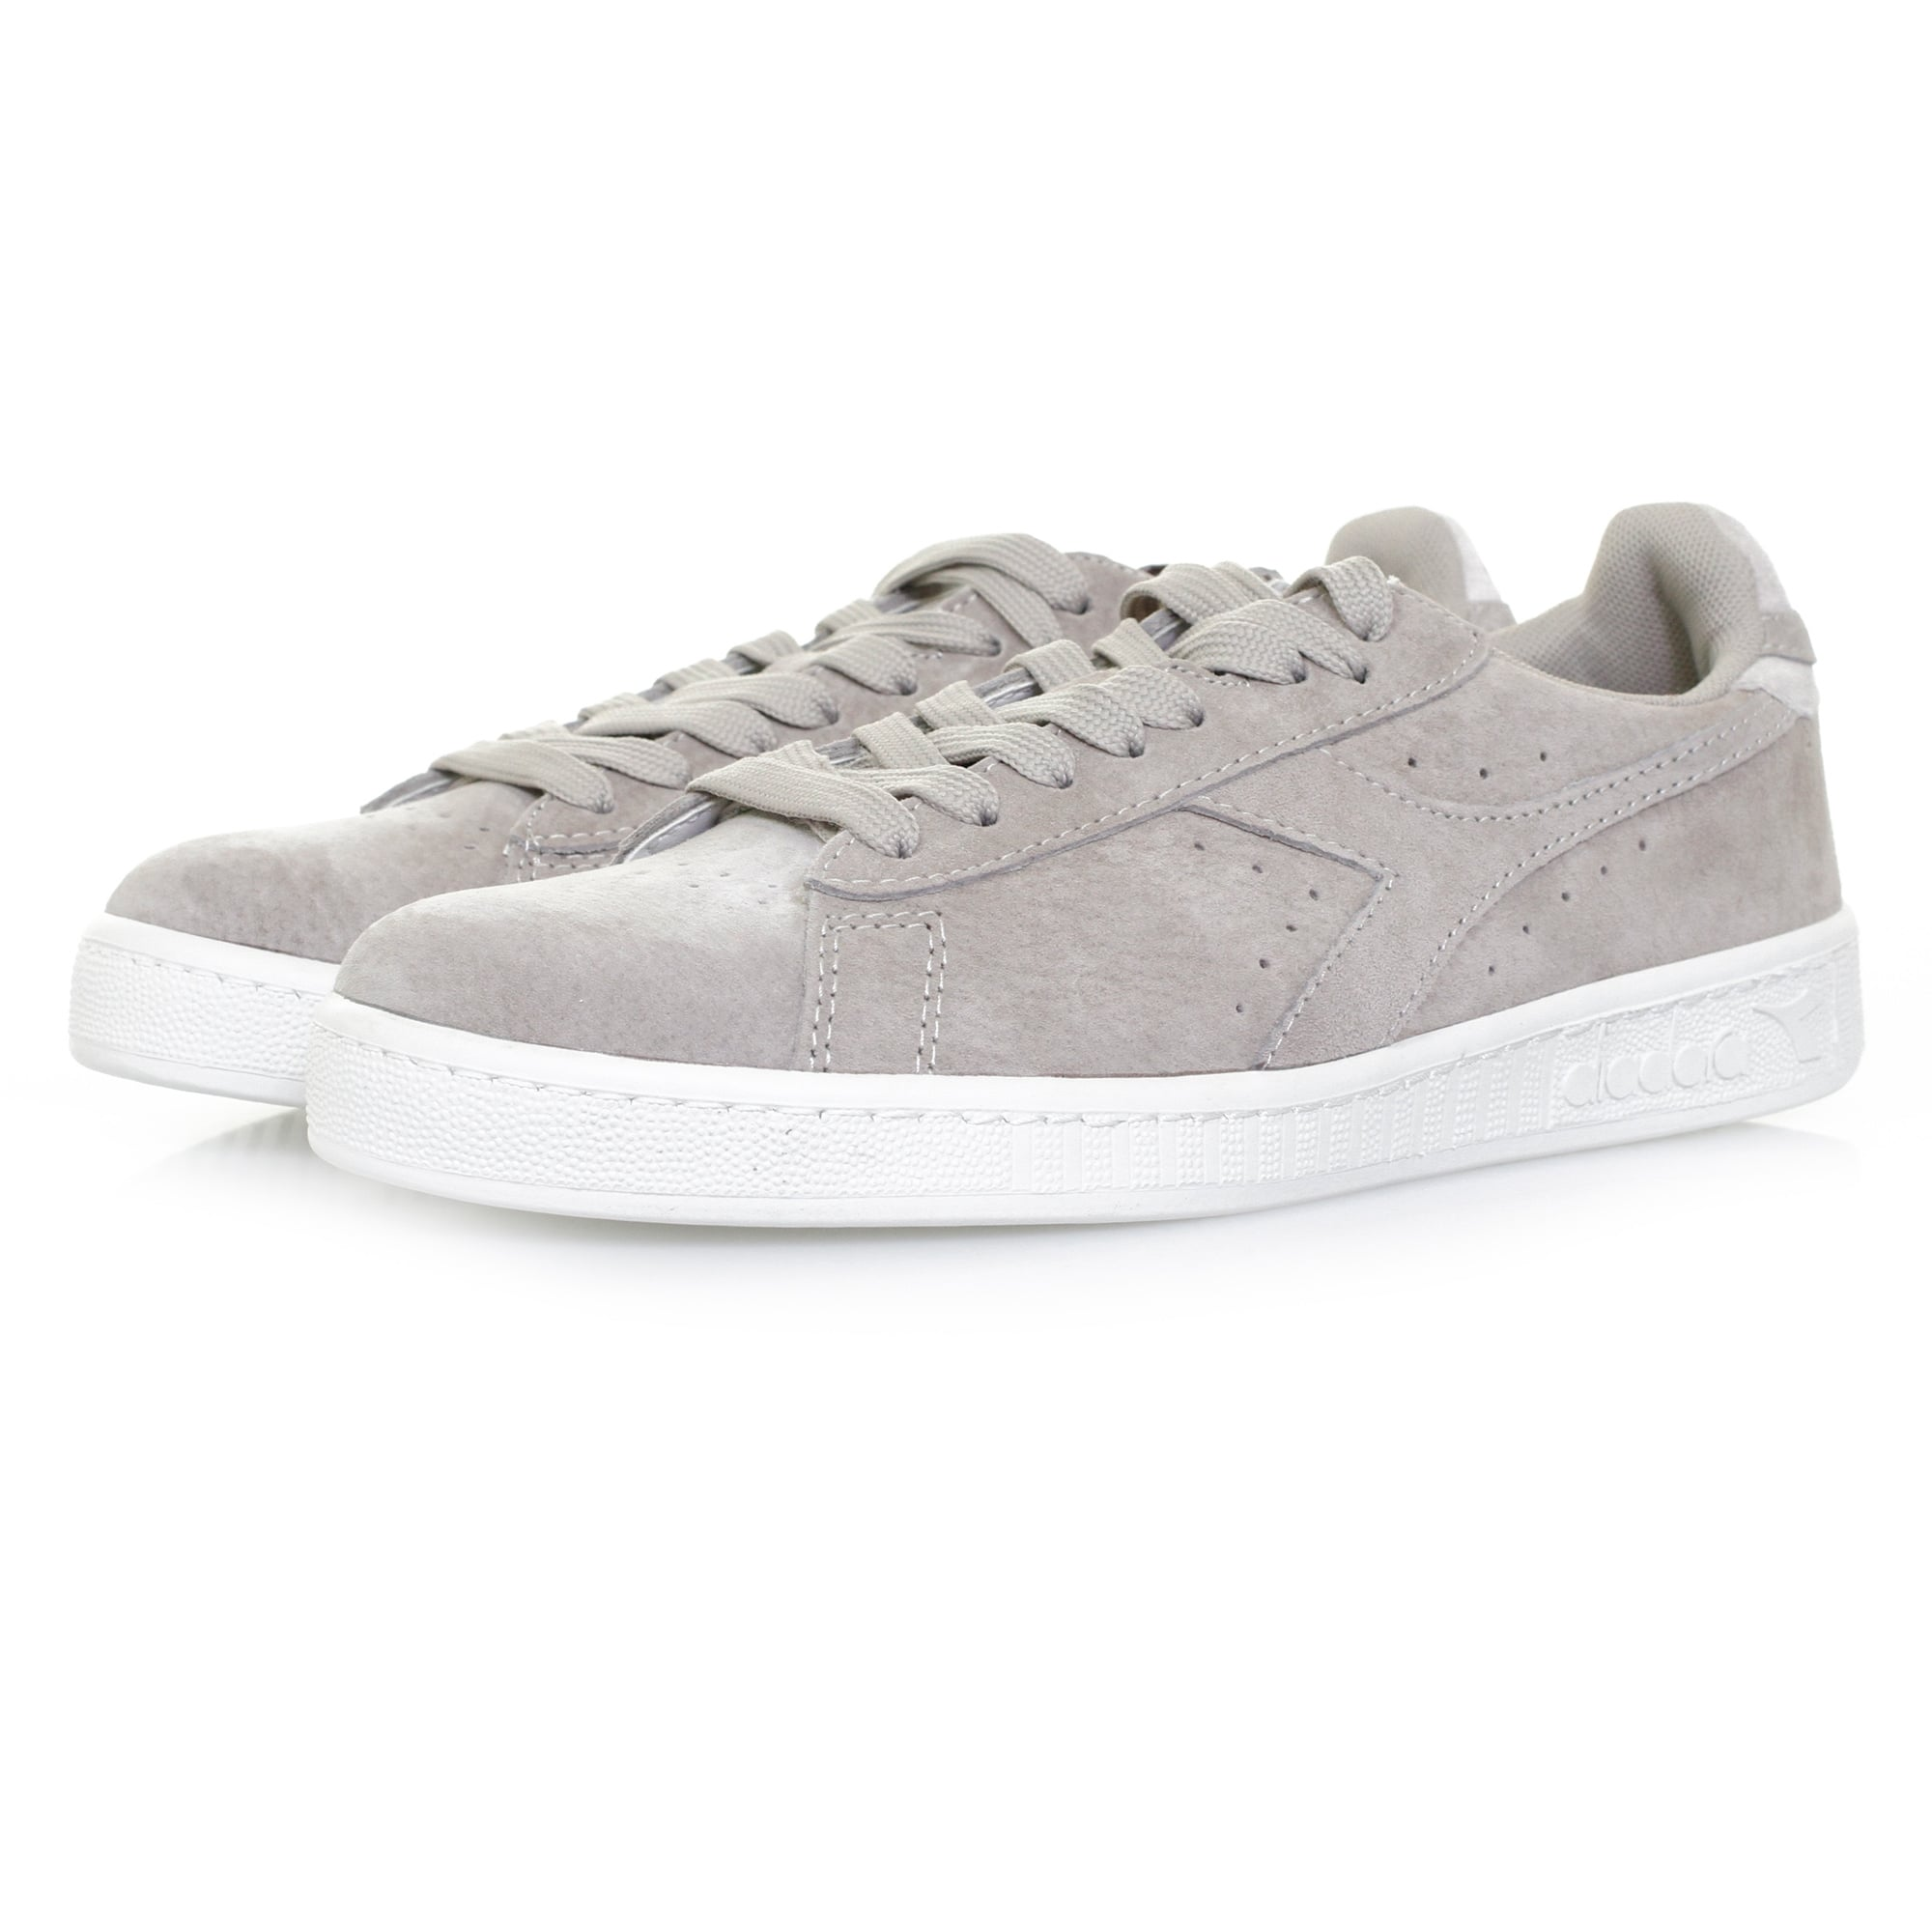 c66a4edc0e Diadora Diadora Game Low S Grey Shoe 501171832